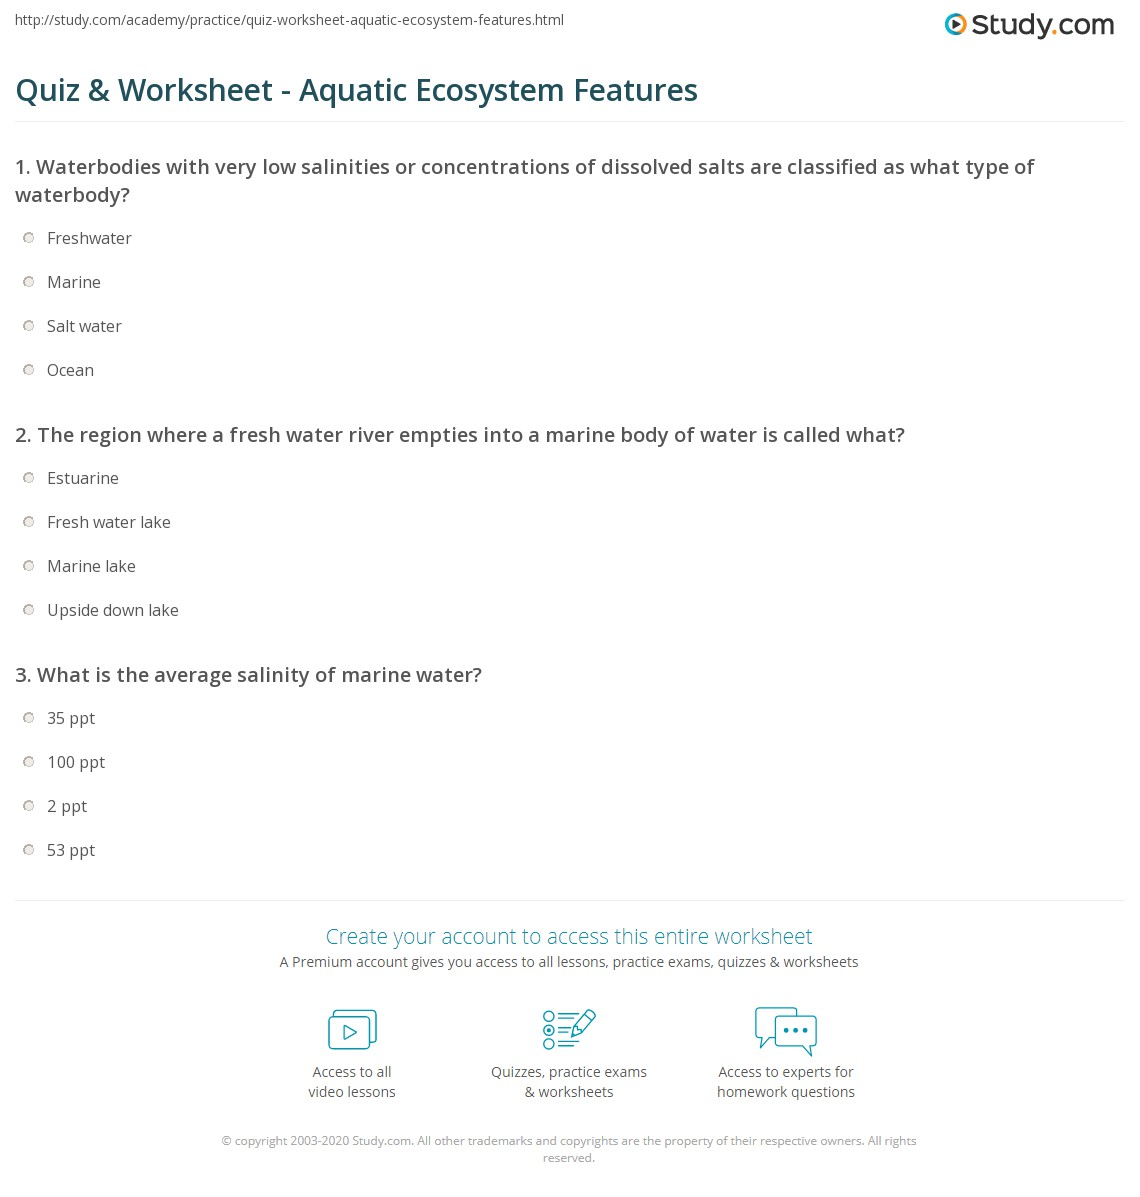 Quiz Worksheet Aquatic Ecosystem Features Study Com